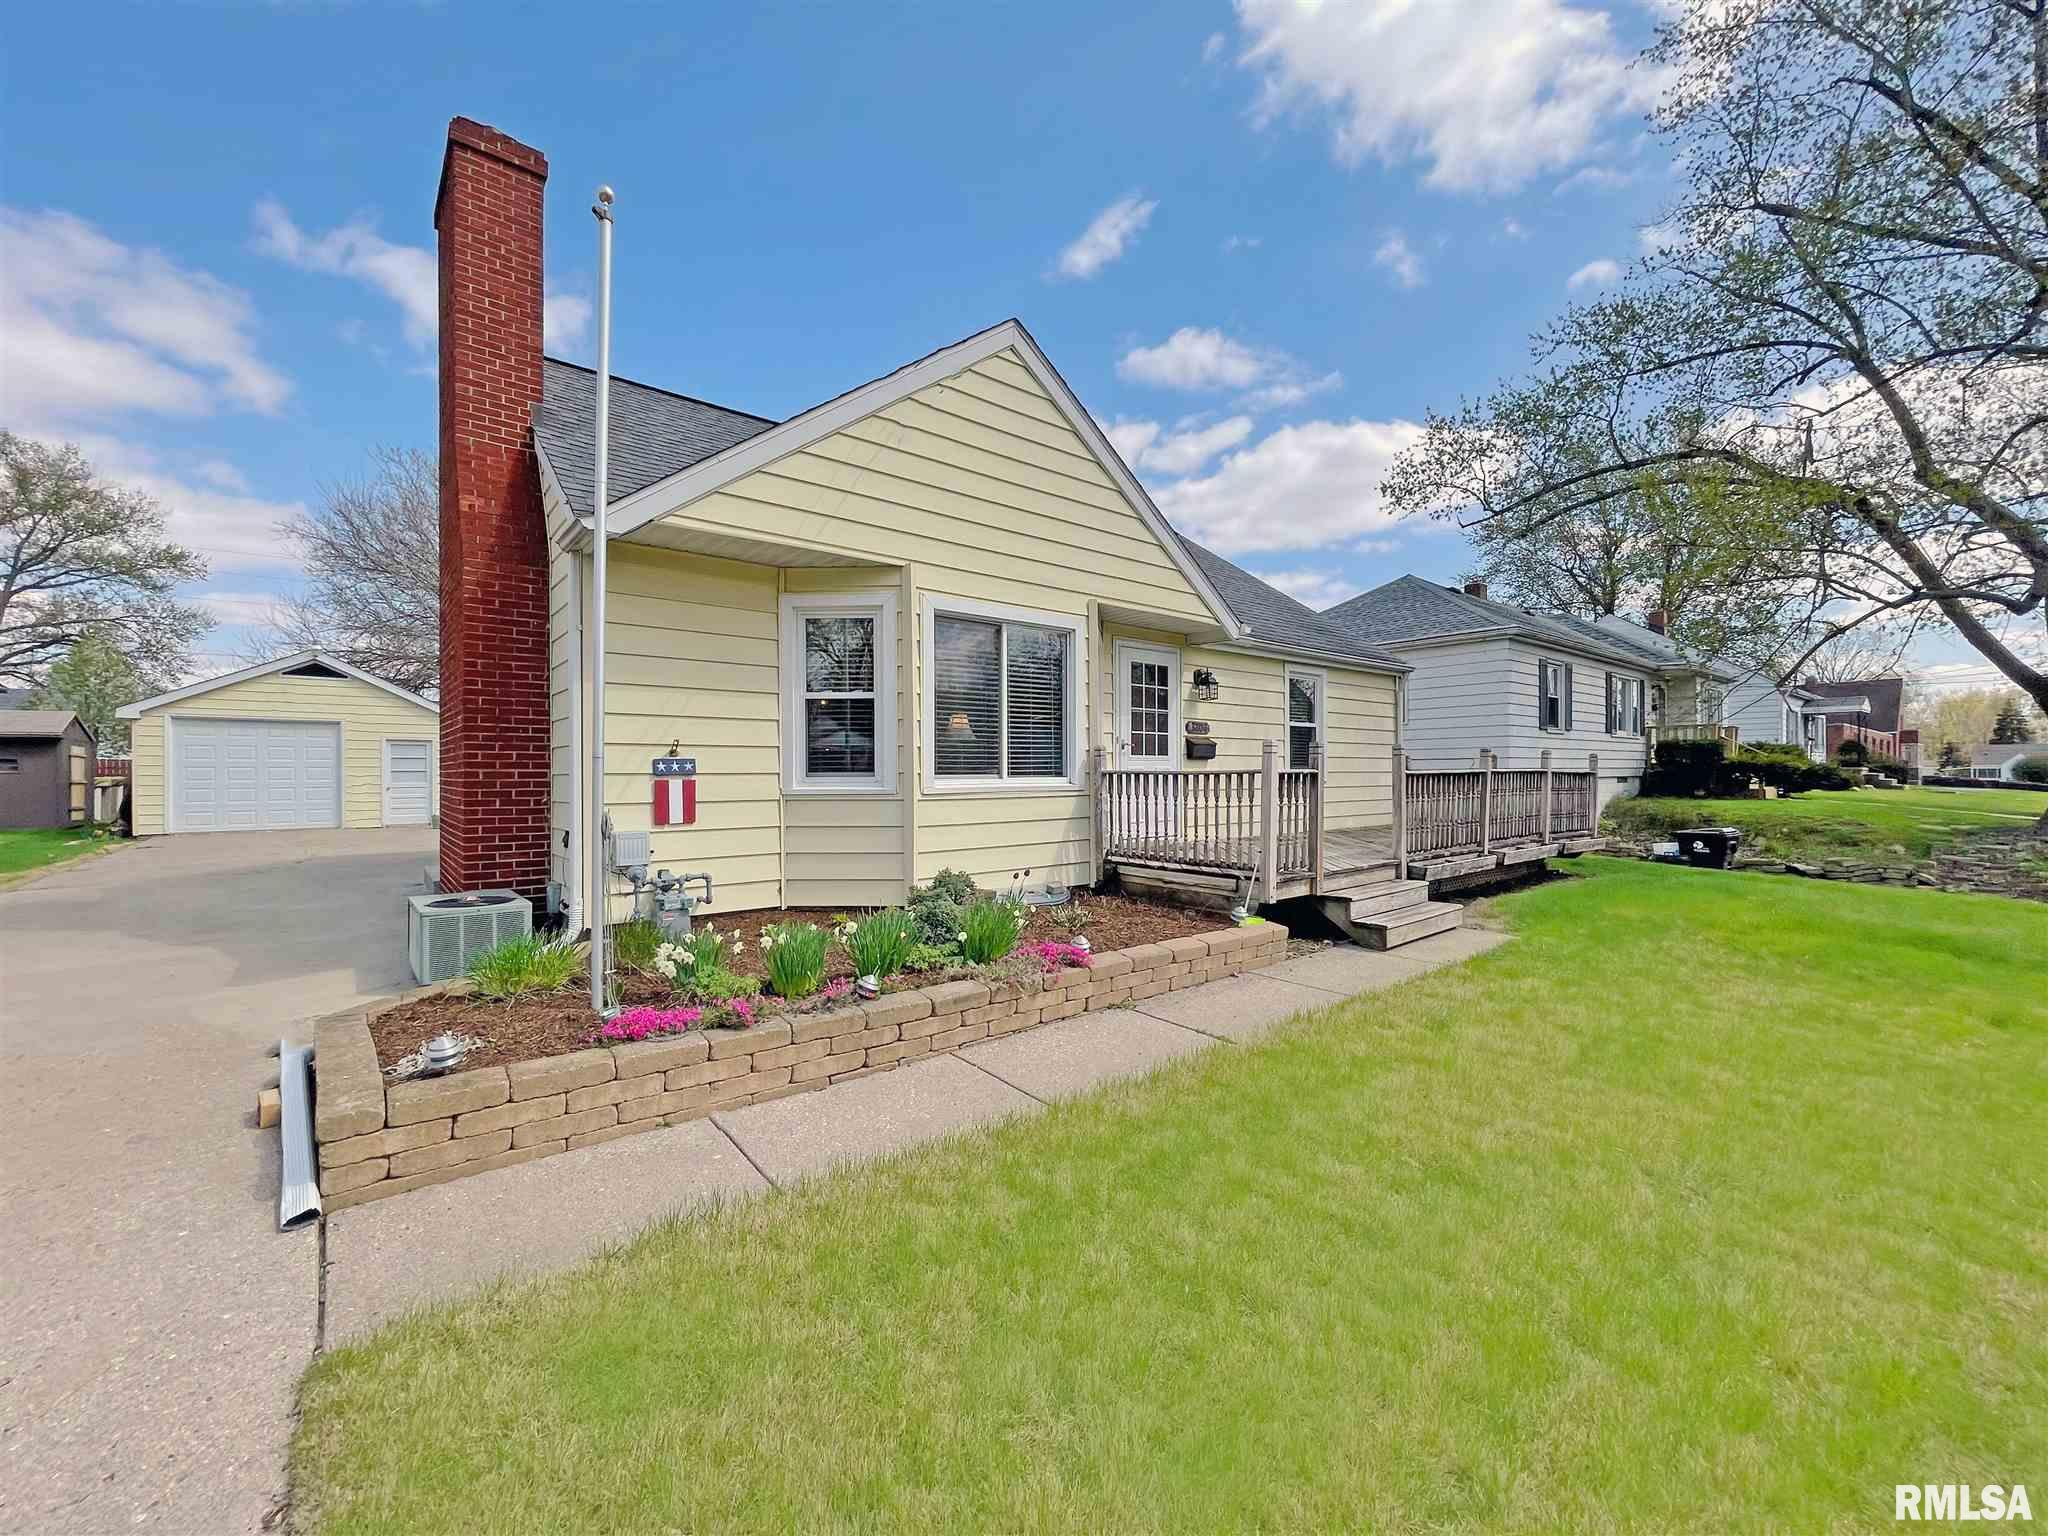 3206 N CHAPEL Property Photo - Peoria, IL real estate listing